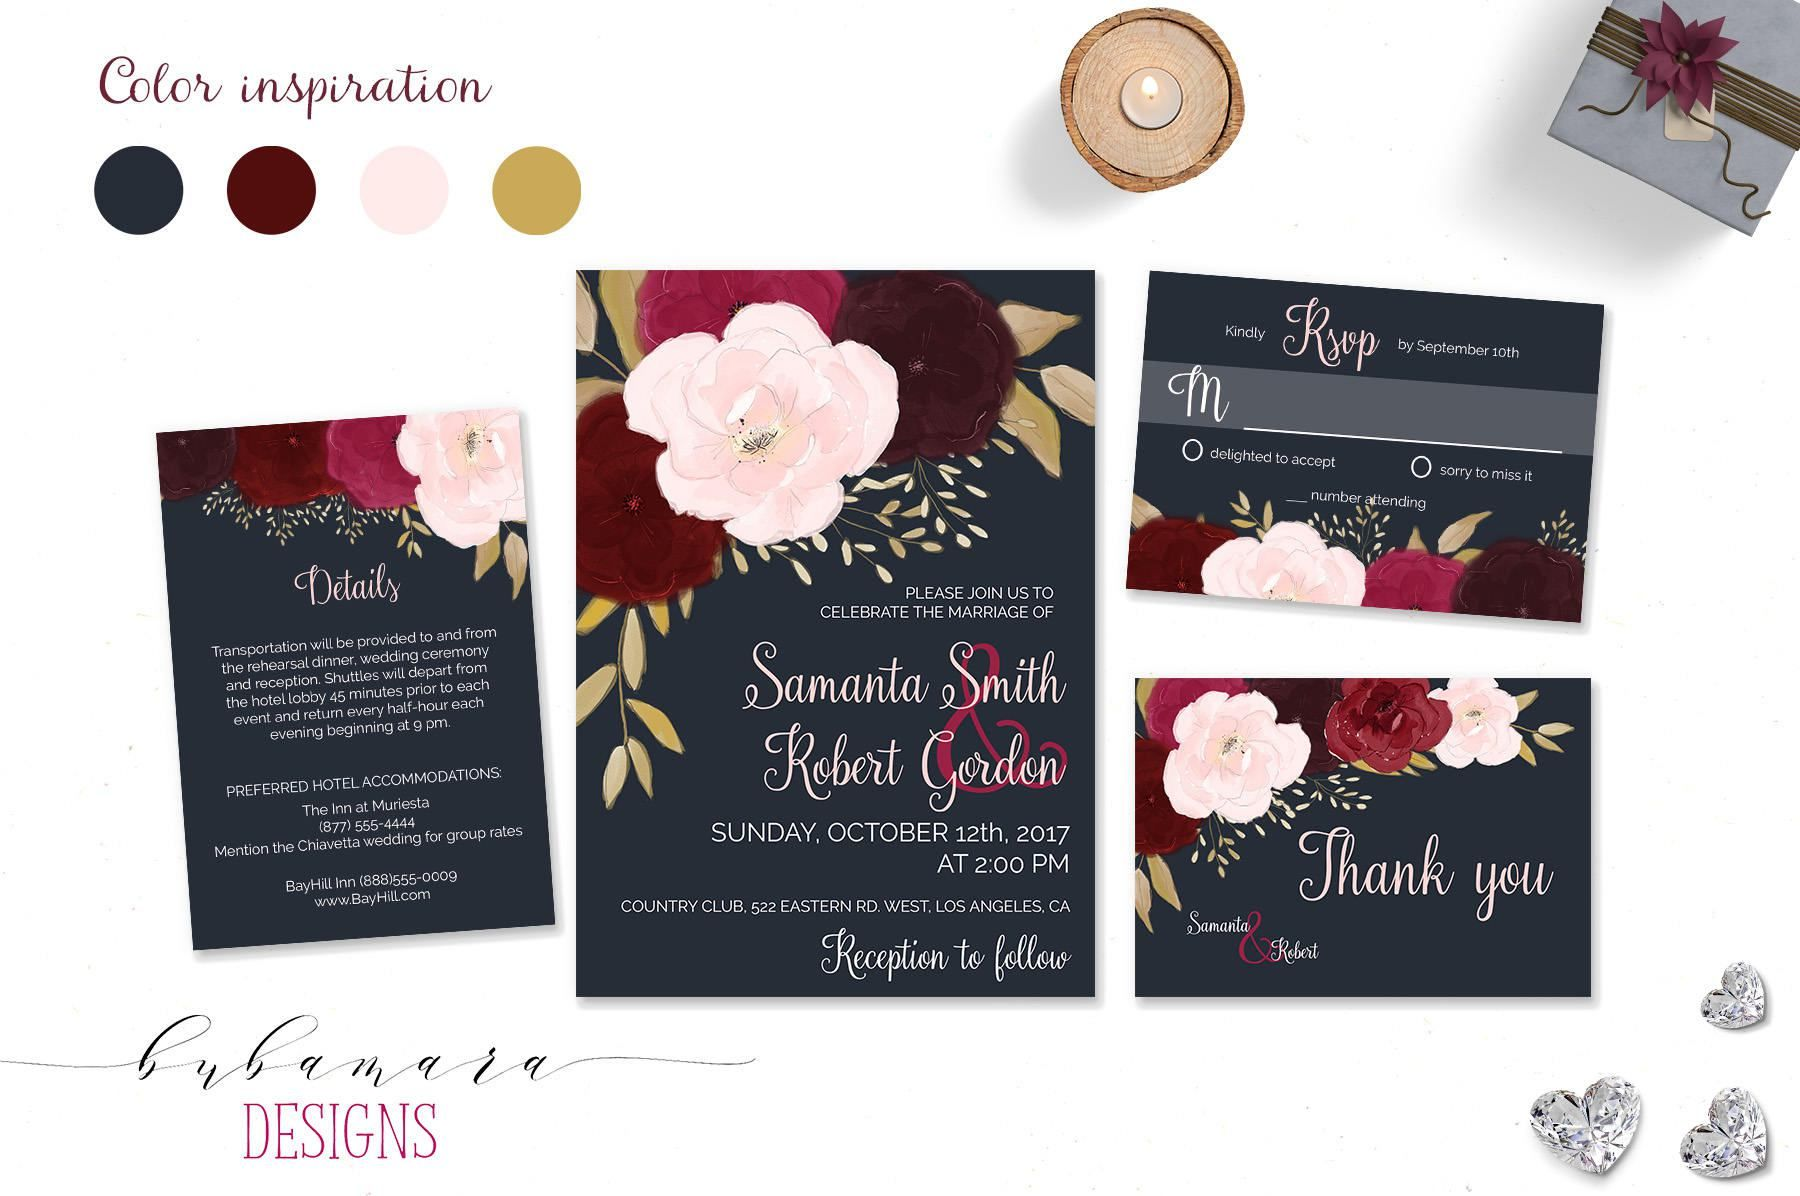 Wedding Invitation Card Blank Wedding Invitation Card – Blank Wedding Invitation Card Stock